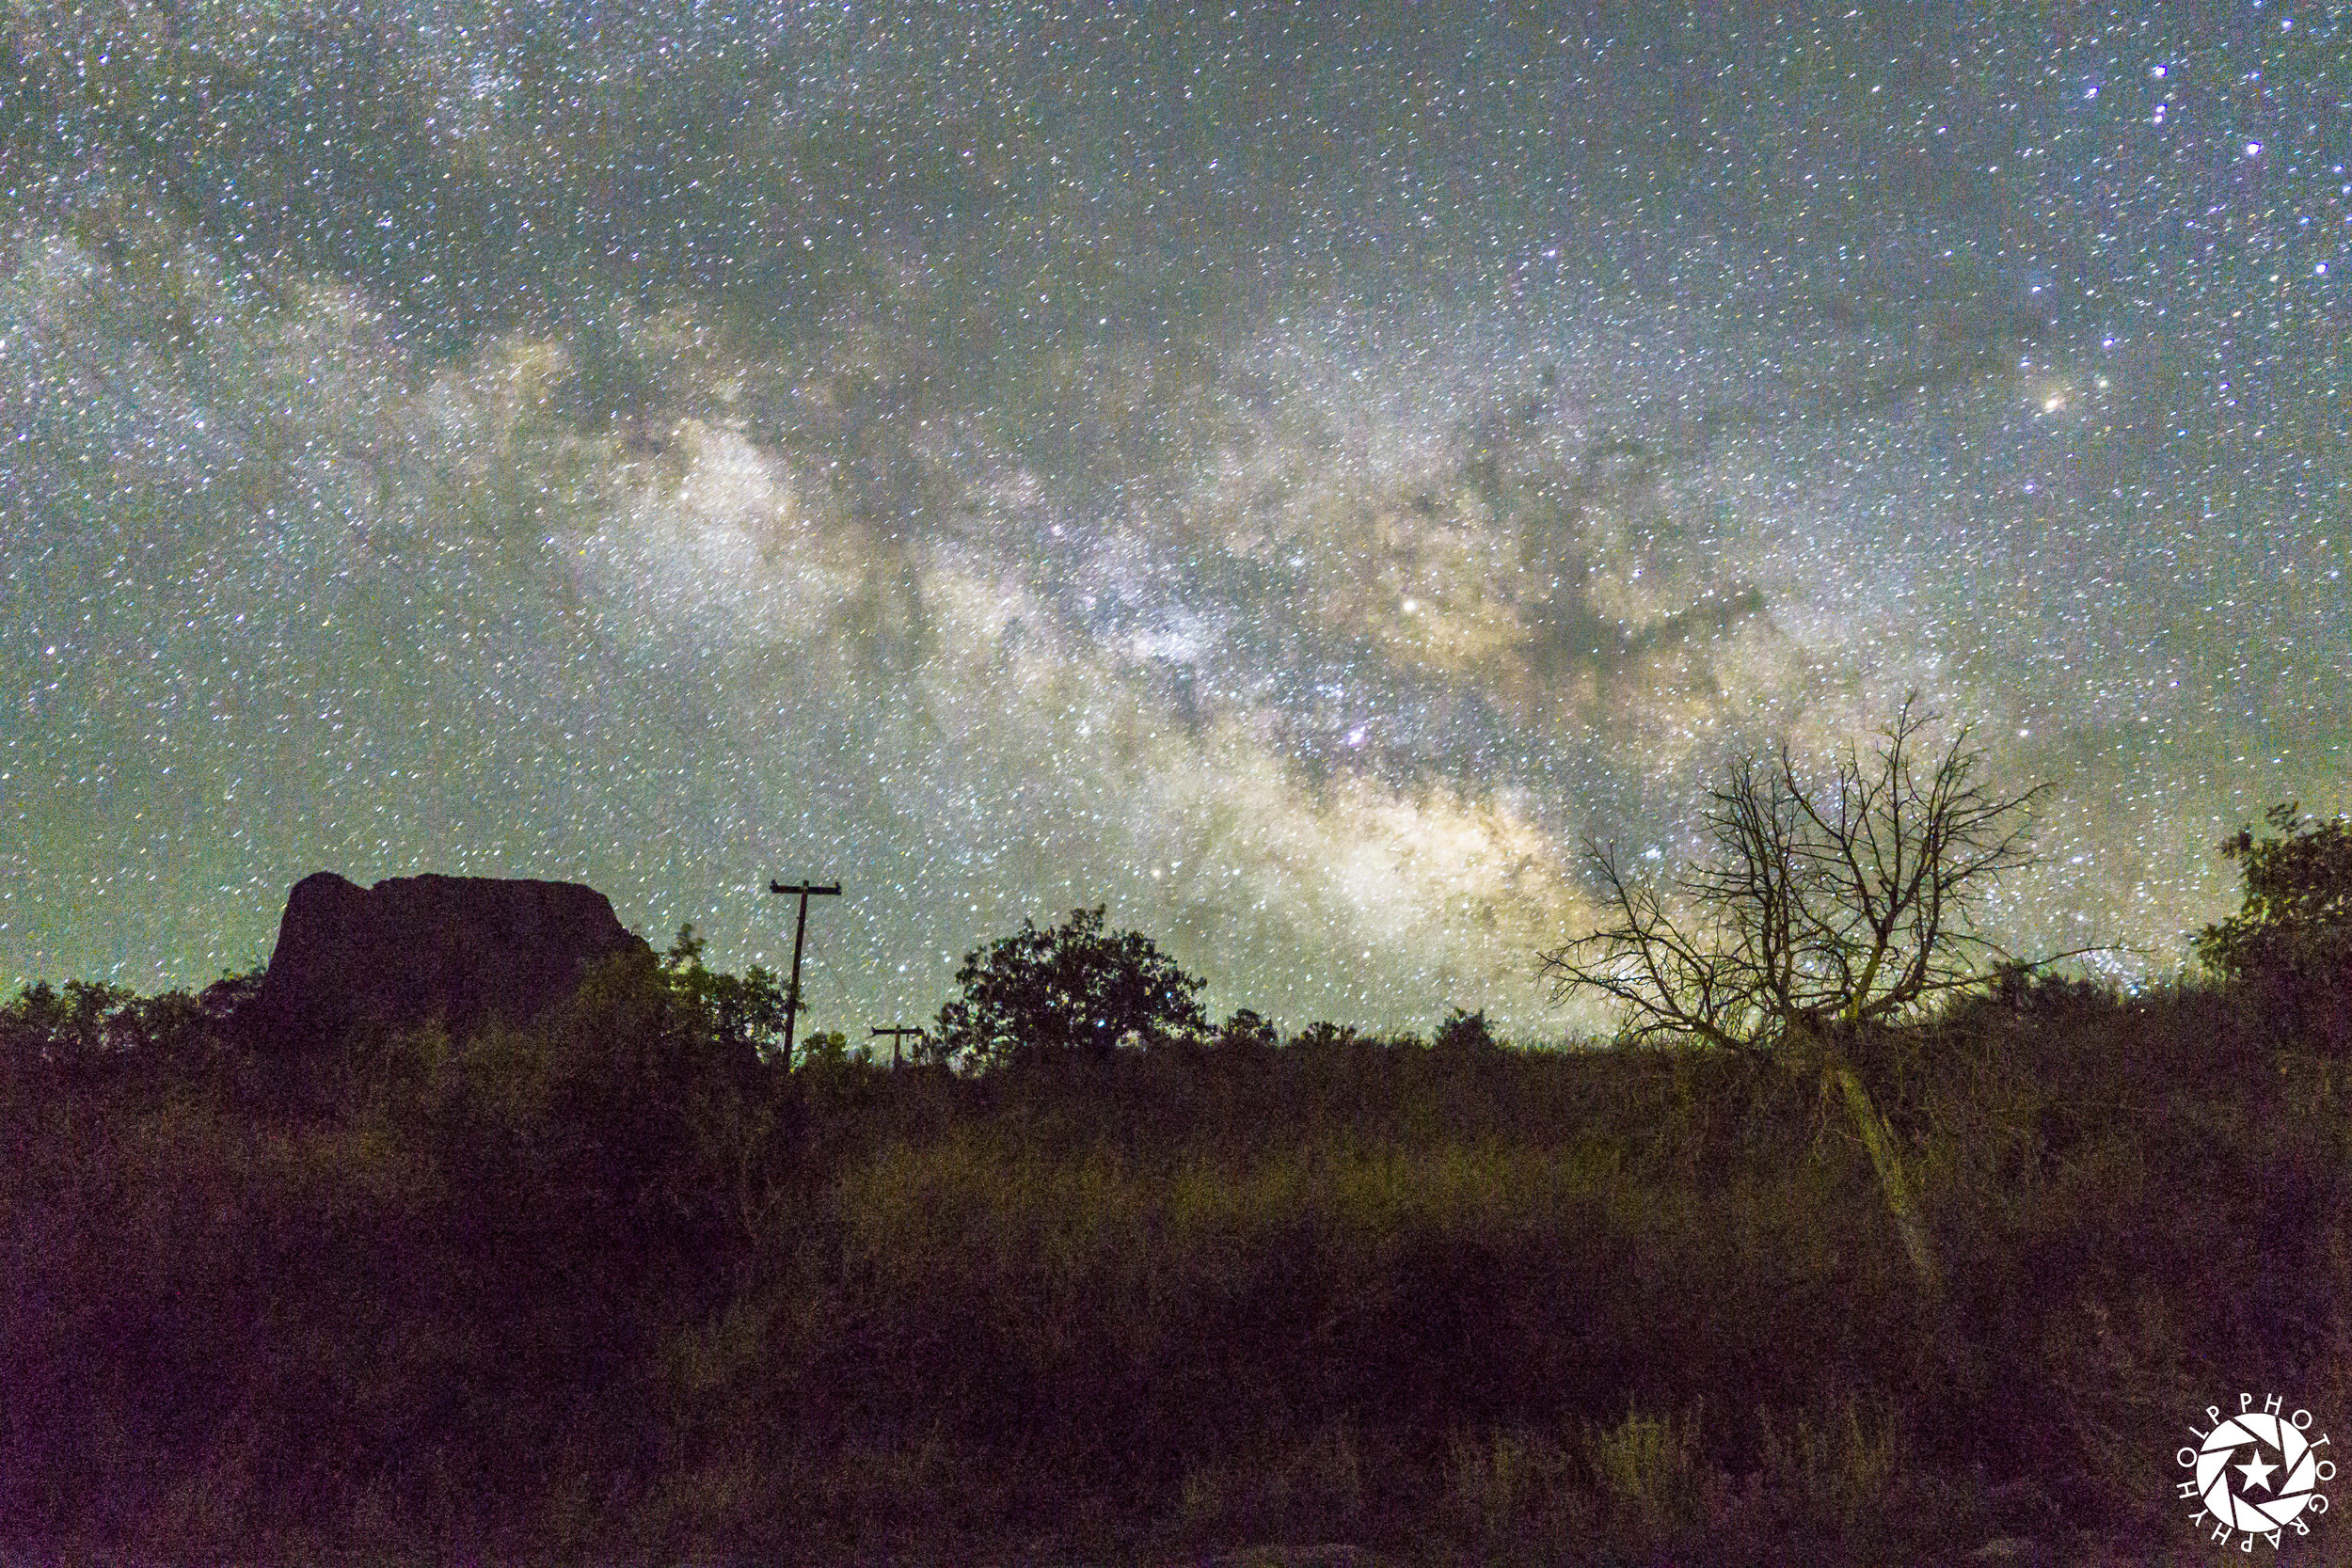 Milky Way Long Exposure Photo @ Big Bend National Park